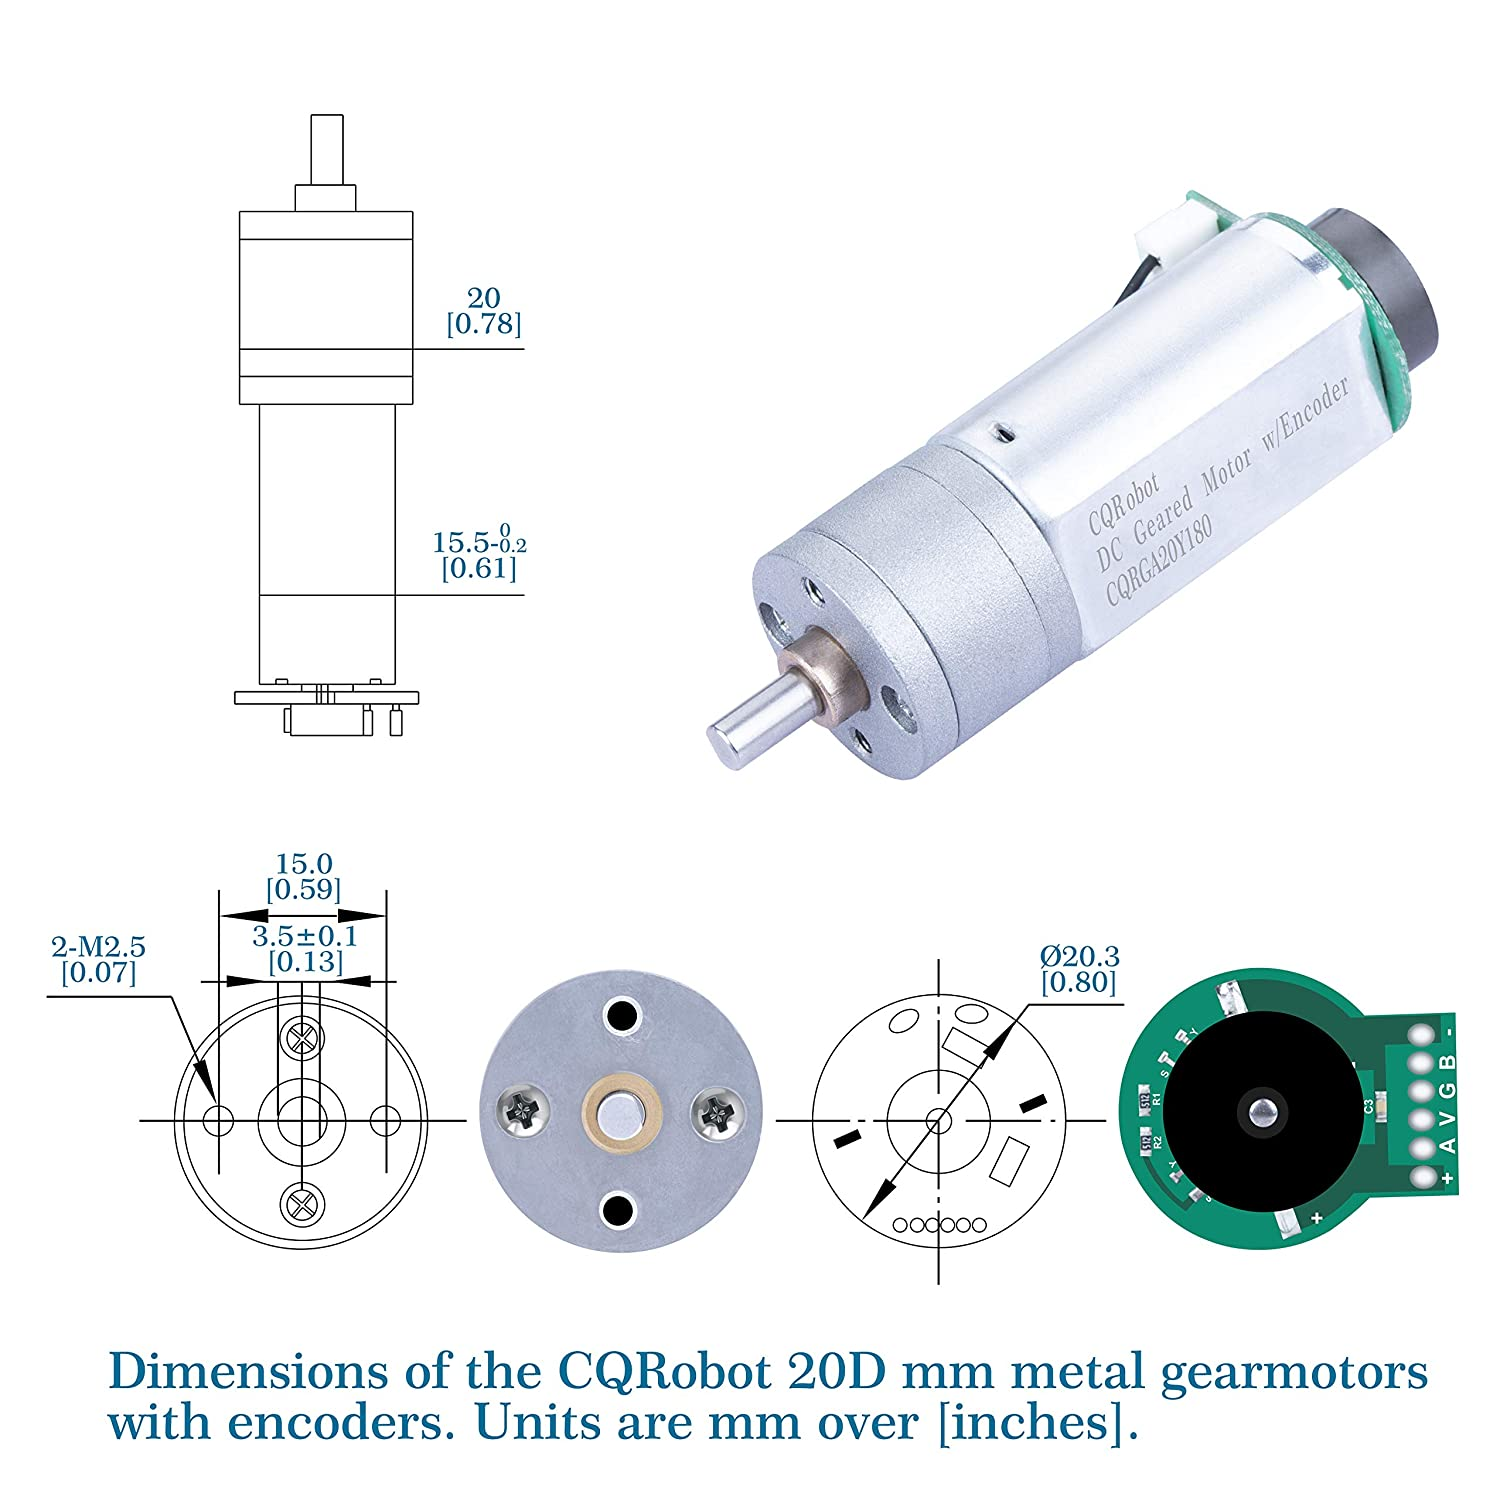 D-Shaped Output Shaft 4 mm Diameter and Gearbox Panel Extends 11 mm. 77.84 oz.in CQRobot 107.5:1 Metal Gearmotor 20Dx60.4L mm 12V with 48 CPR Encoder with Mounting Bracket 58 RPM//5.6 kg.cm